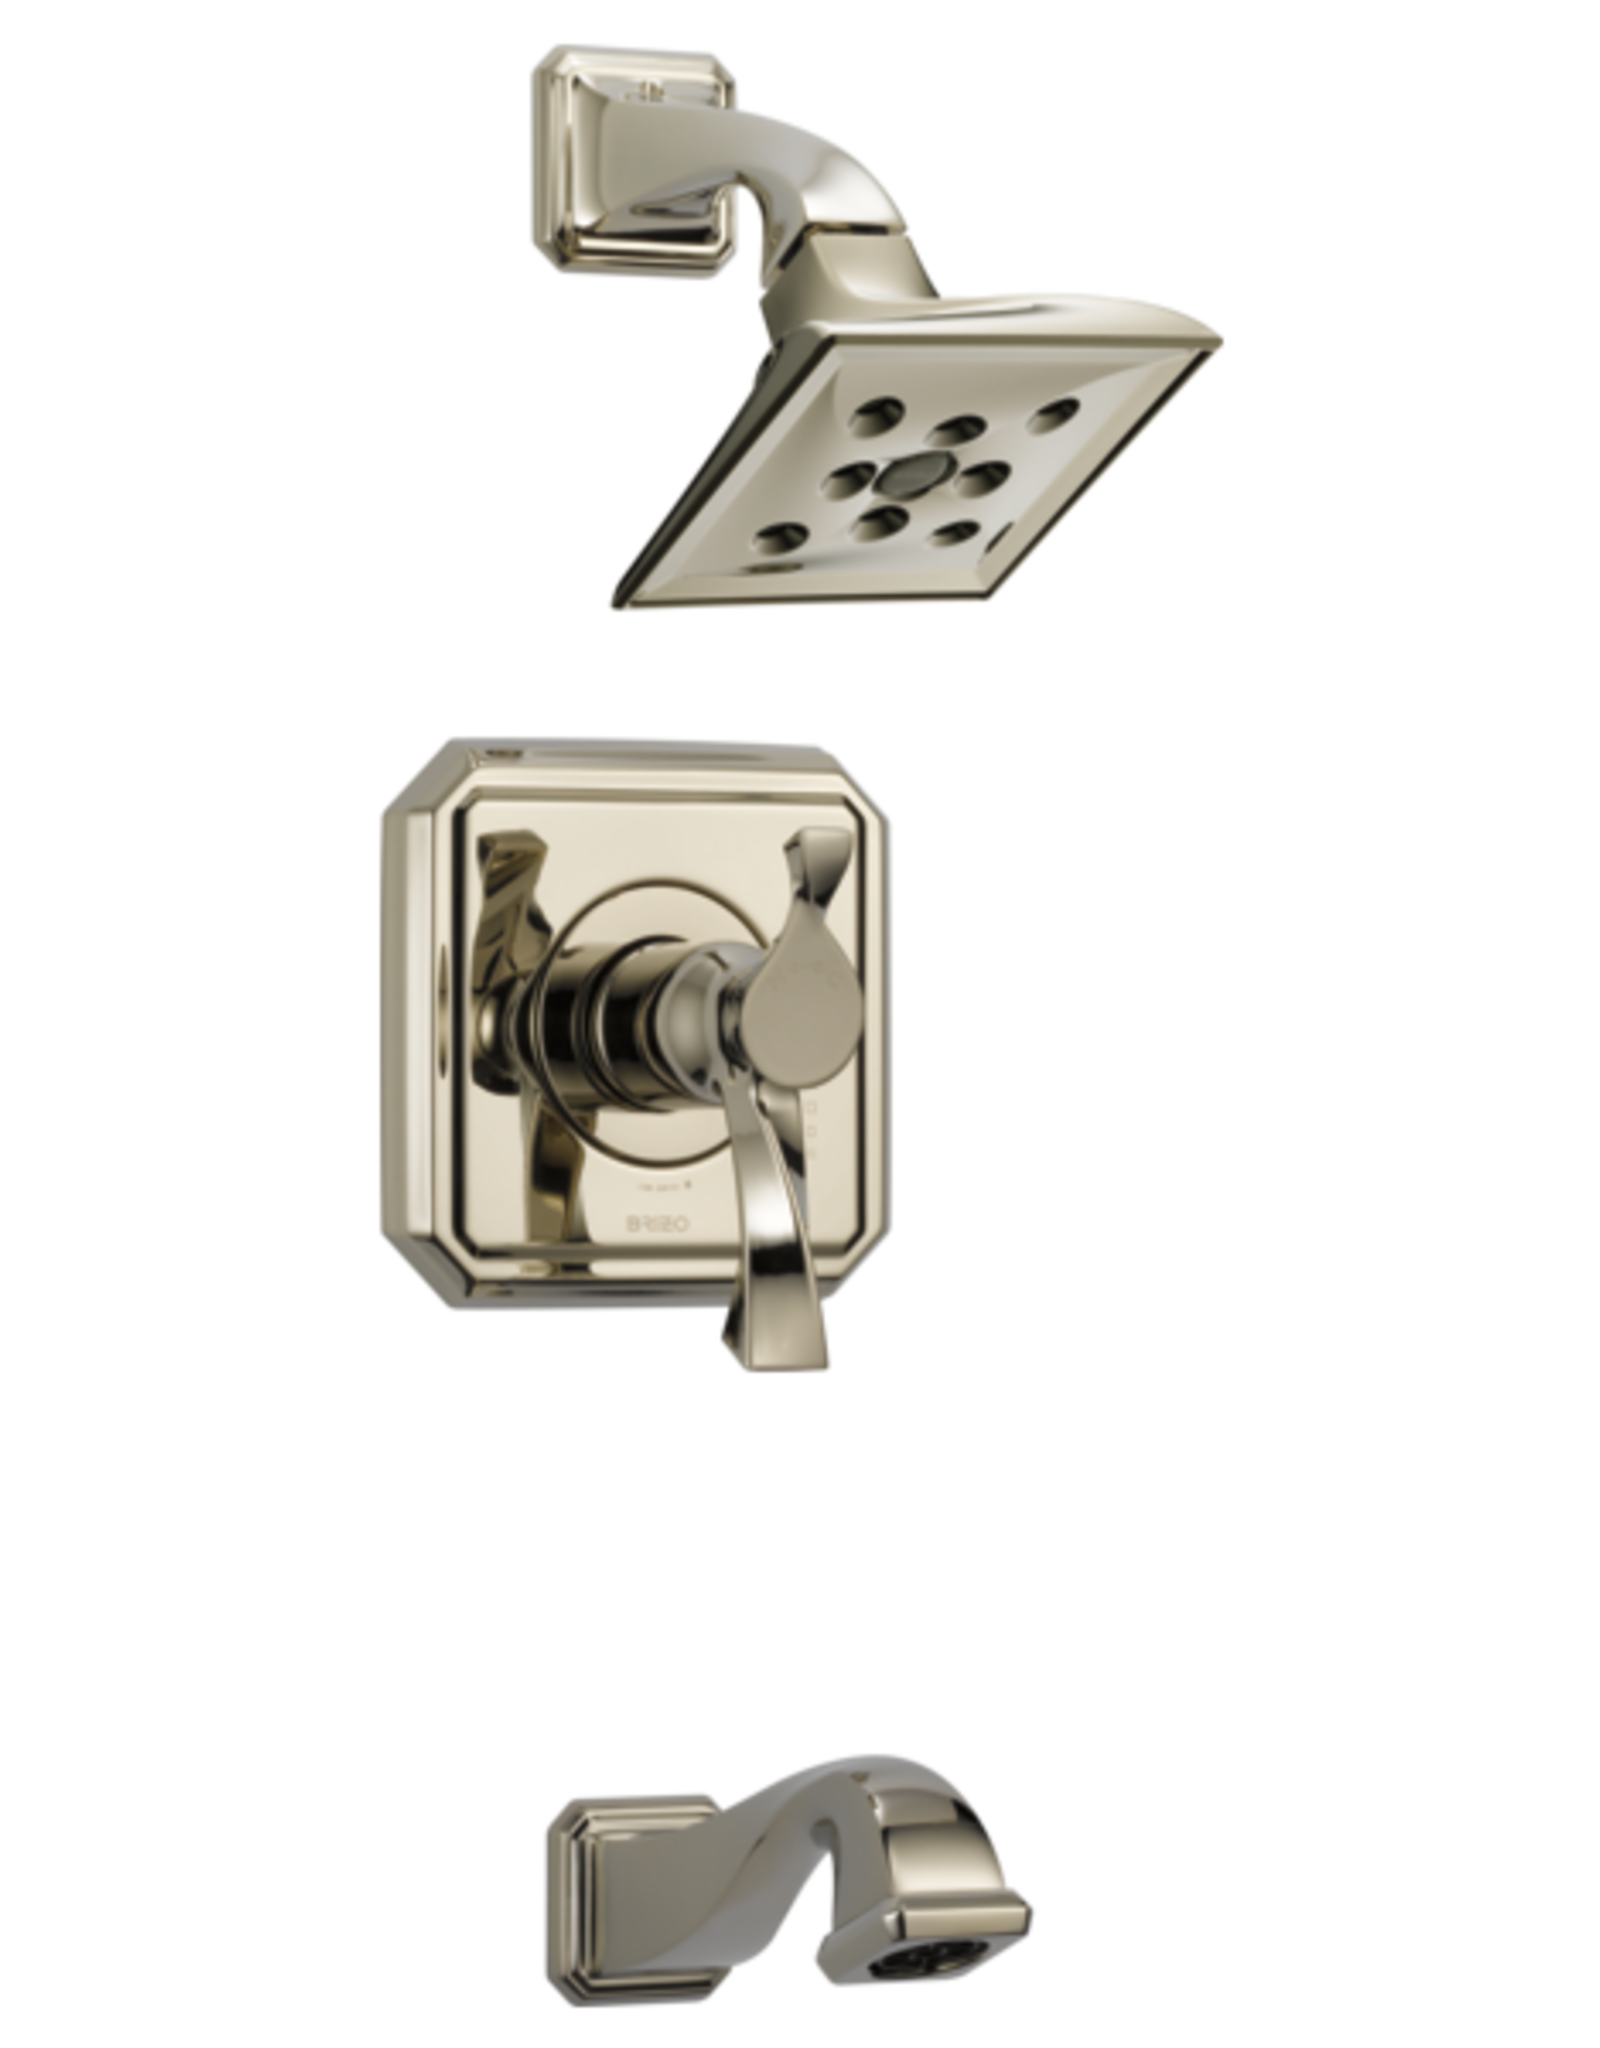 Brizo BRIZO VIRAGE - POLISHED NICKEL TEMPASSURE THERMOSTATIC TUB/SHOWER TRIM